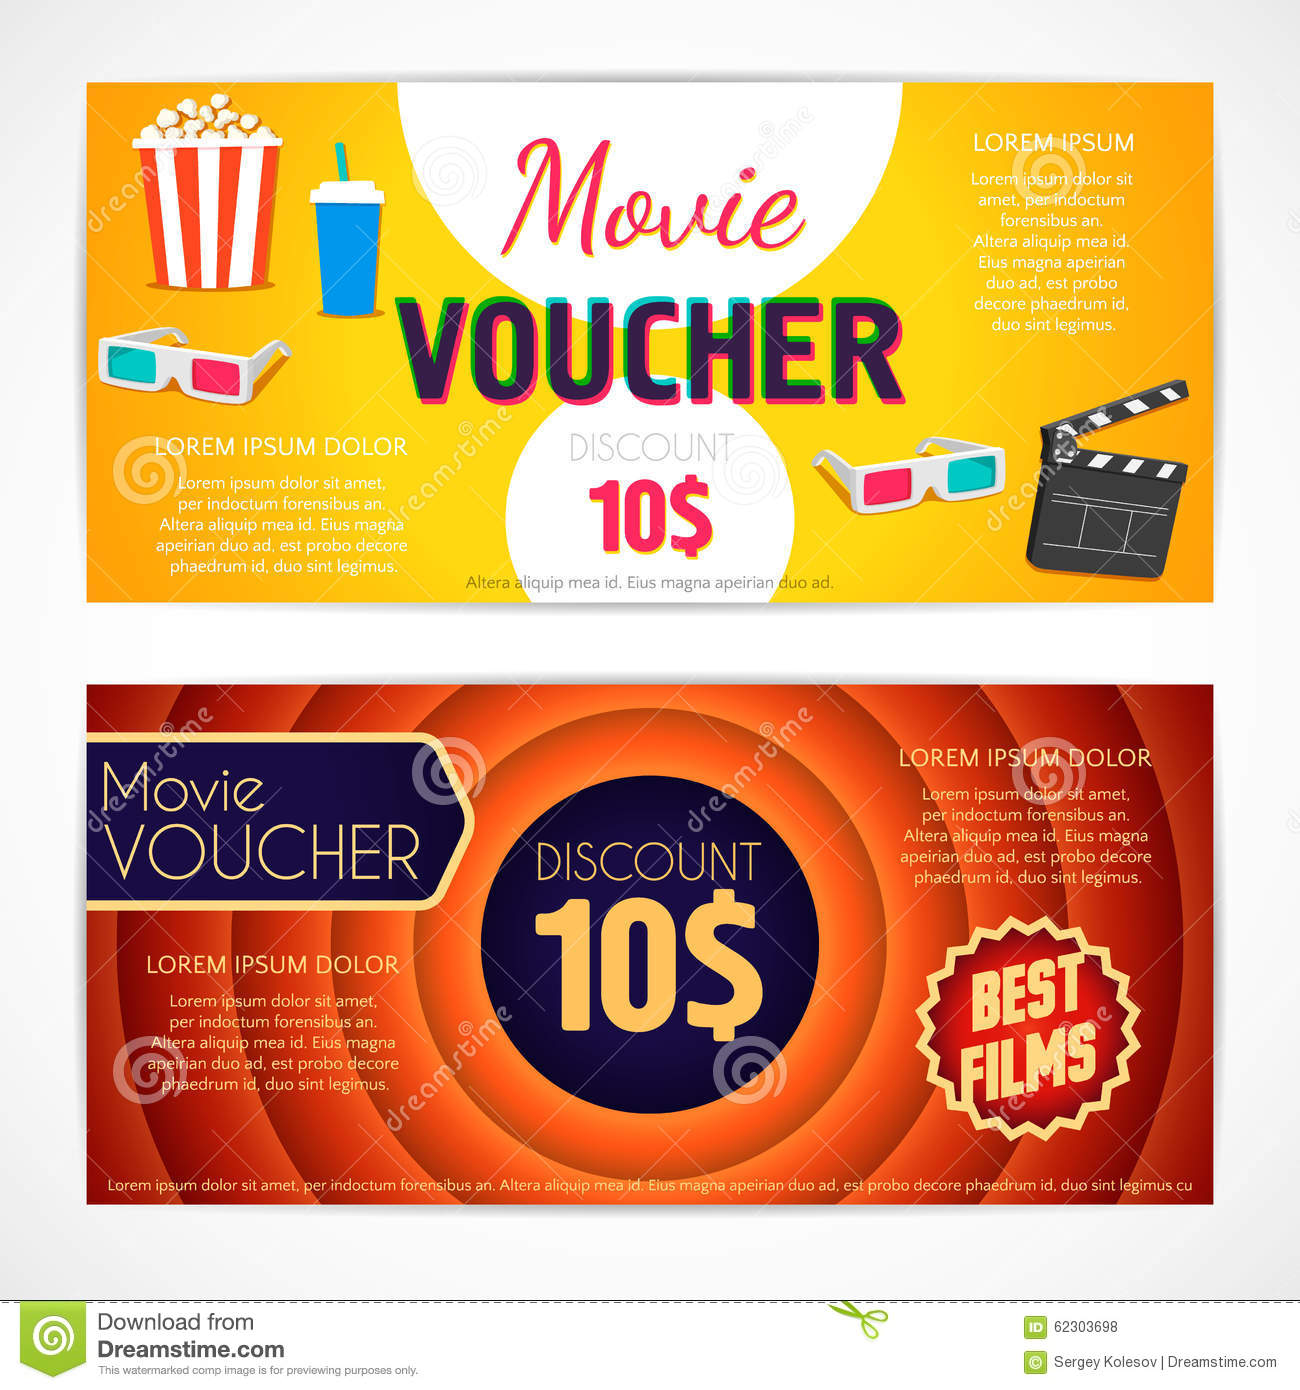 Discount coupons for movies